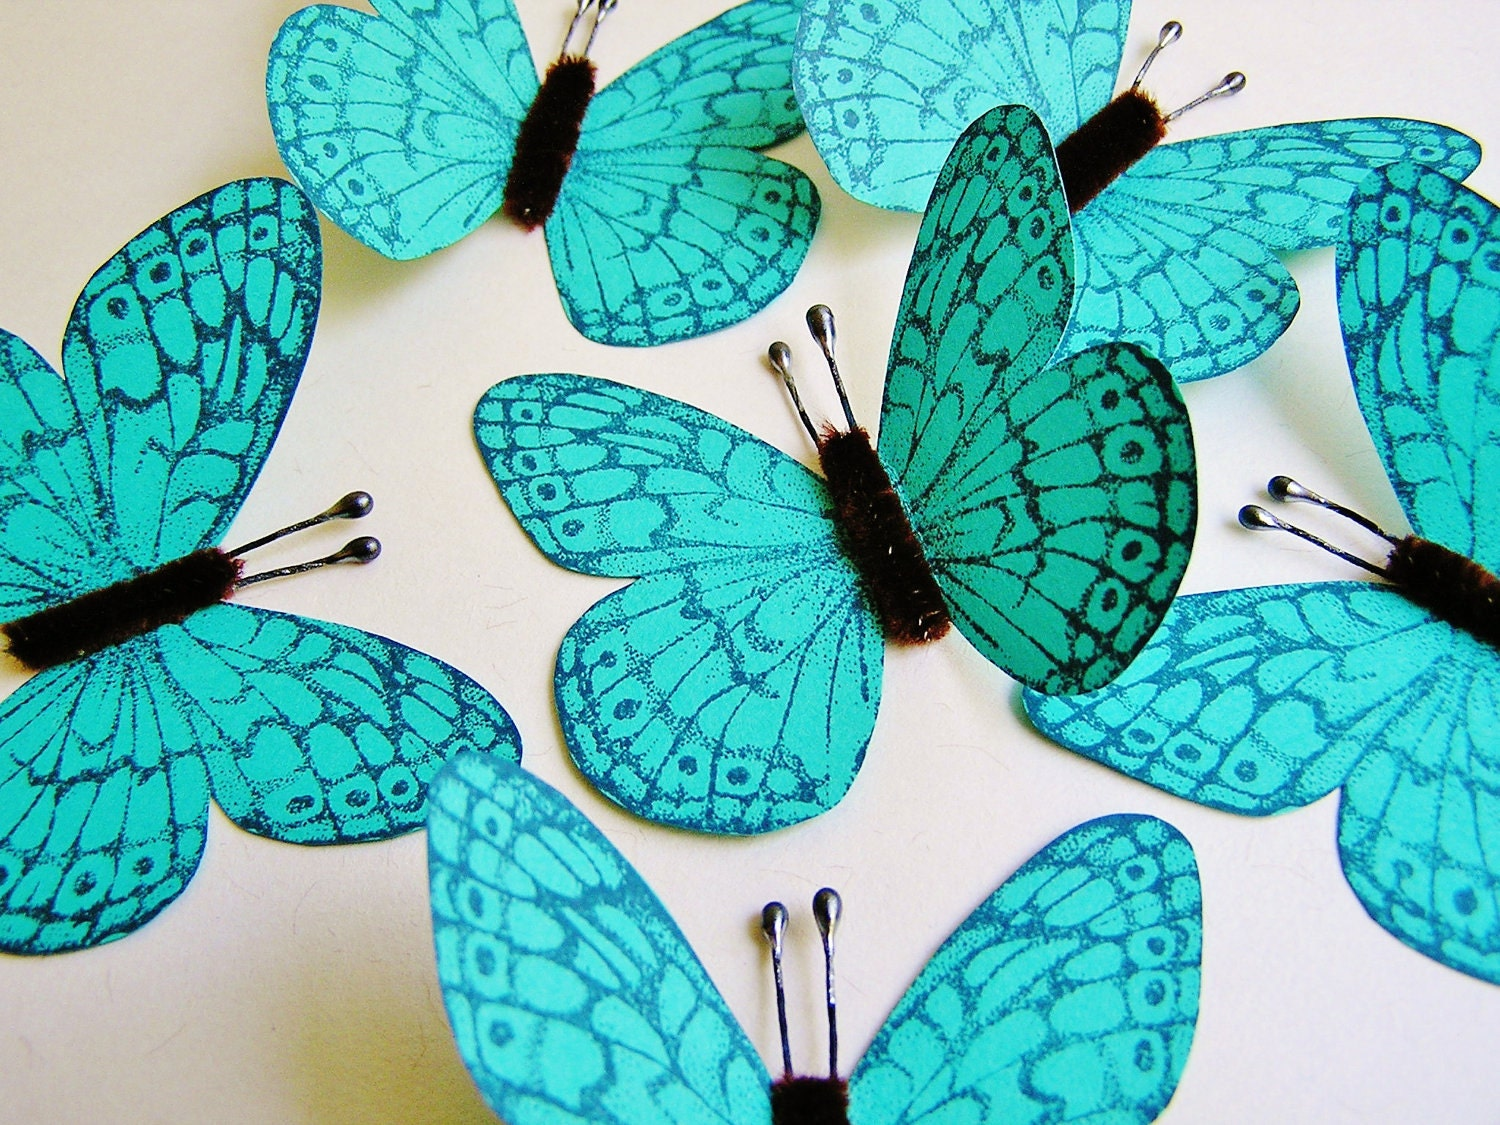 Turquoise /Espresso /Midnight blue Vintage style Bon Bon Butterflies - wedding, wrap, craft, supply, handmade, whimsical, party, decor